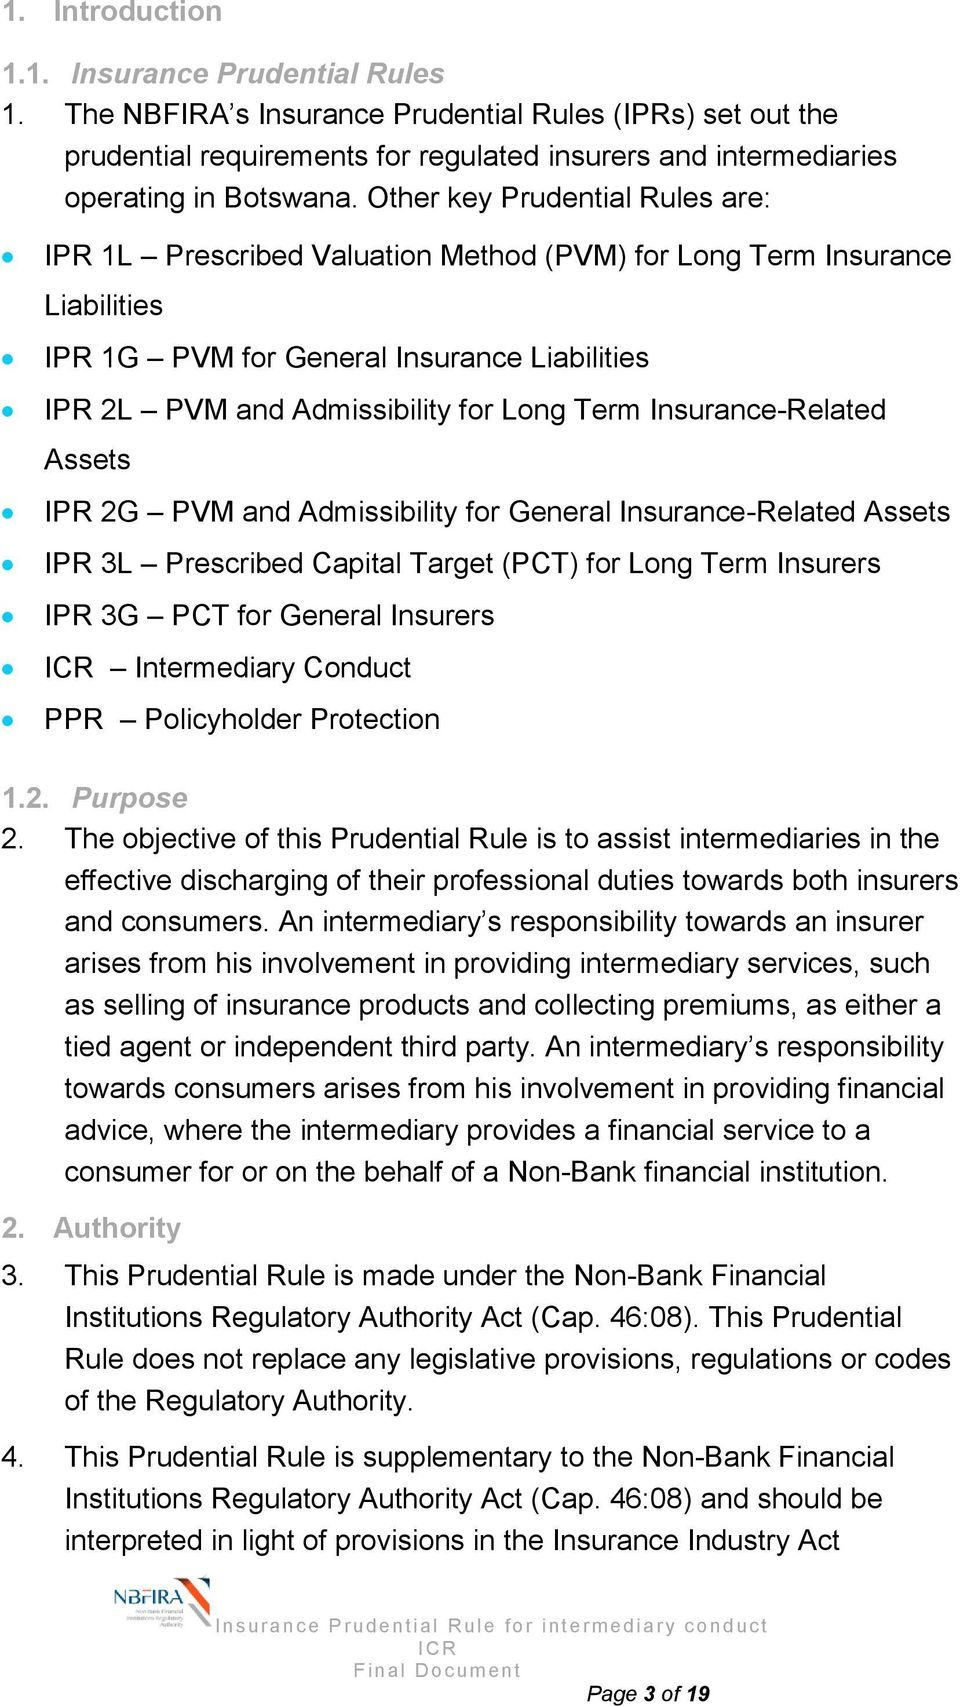 Insurance-Related Assets IPR 2G PVM and Admissibility for General Insurance-Related Assets IPR 3L Prescribed Capital Target (PCT) for Long Term Insurers IPR 3G PCT for General Insurers Intermediary